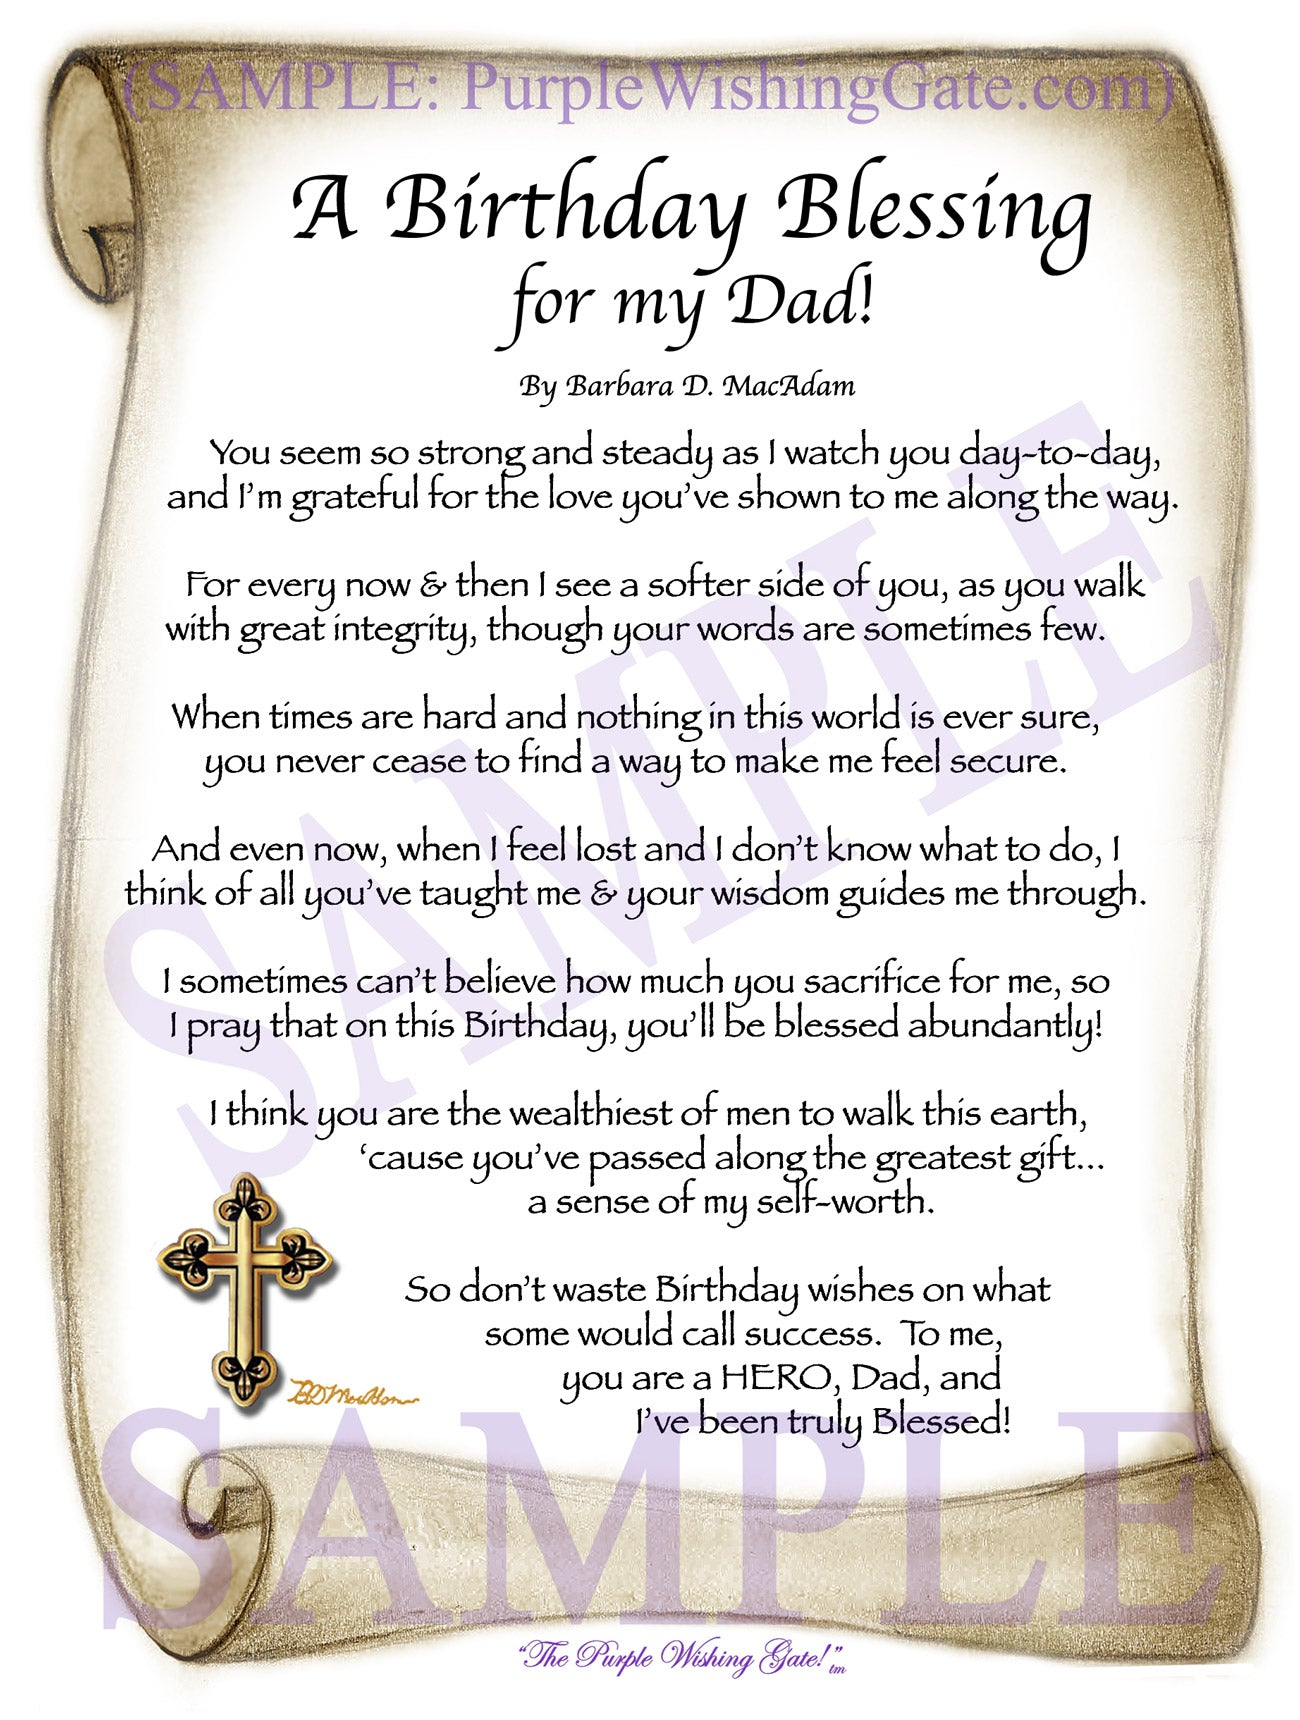 A Birthday Blessing for my Dad! - Birthday Gift - PurpleWishingGate.com